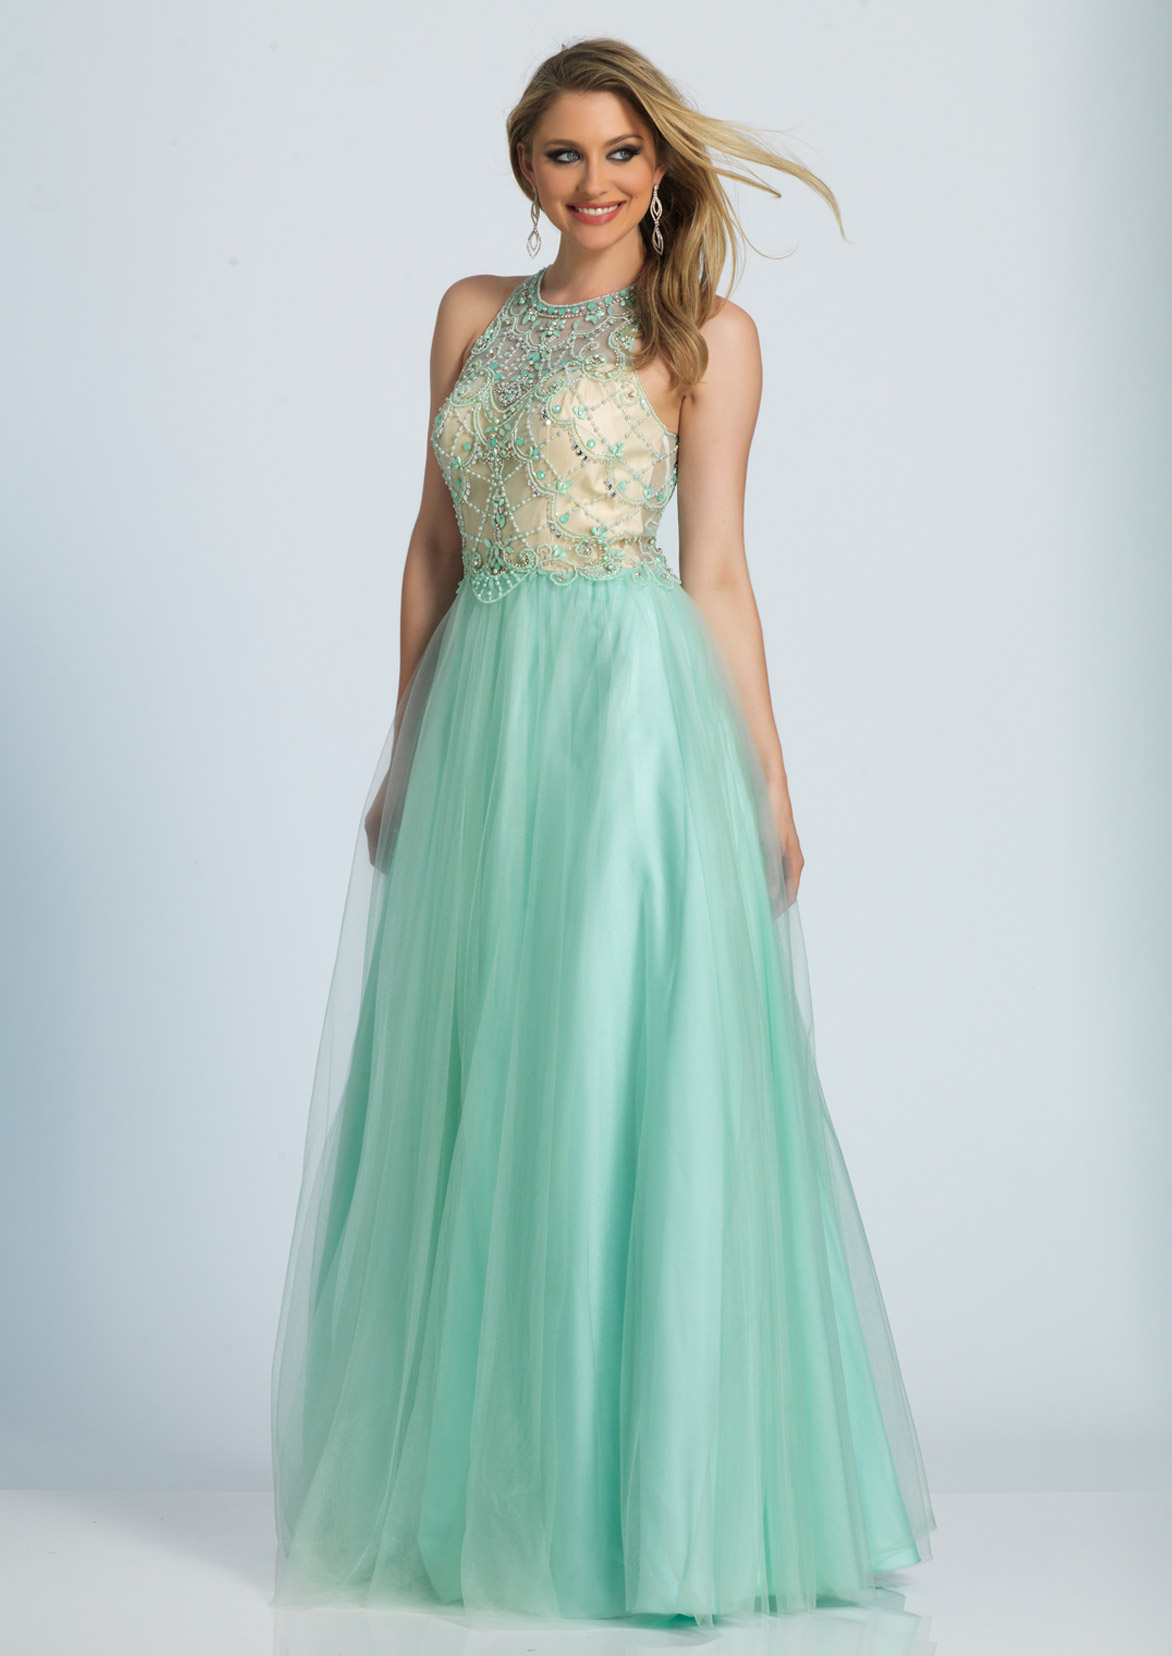 Amazing Prom Dress Shops In Minneapolis Mold - All Wedding Dresses ...